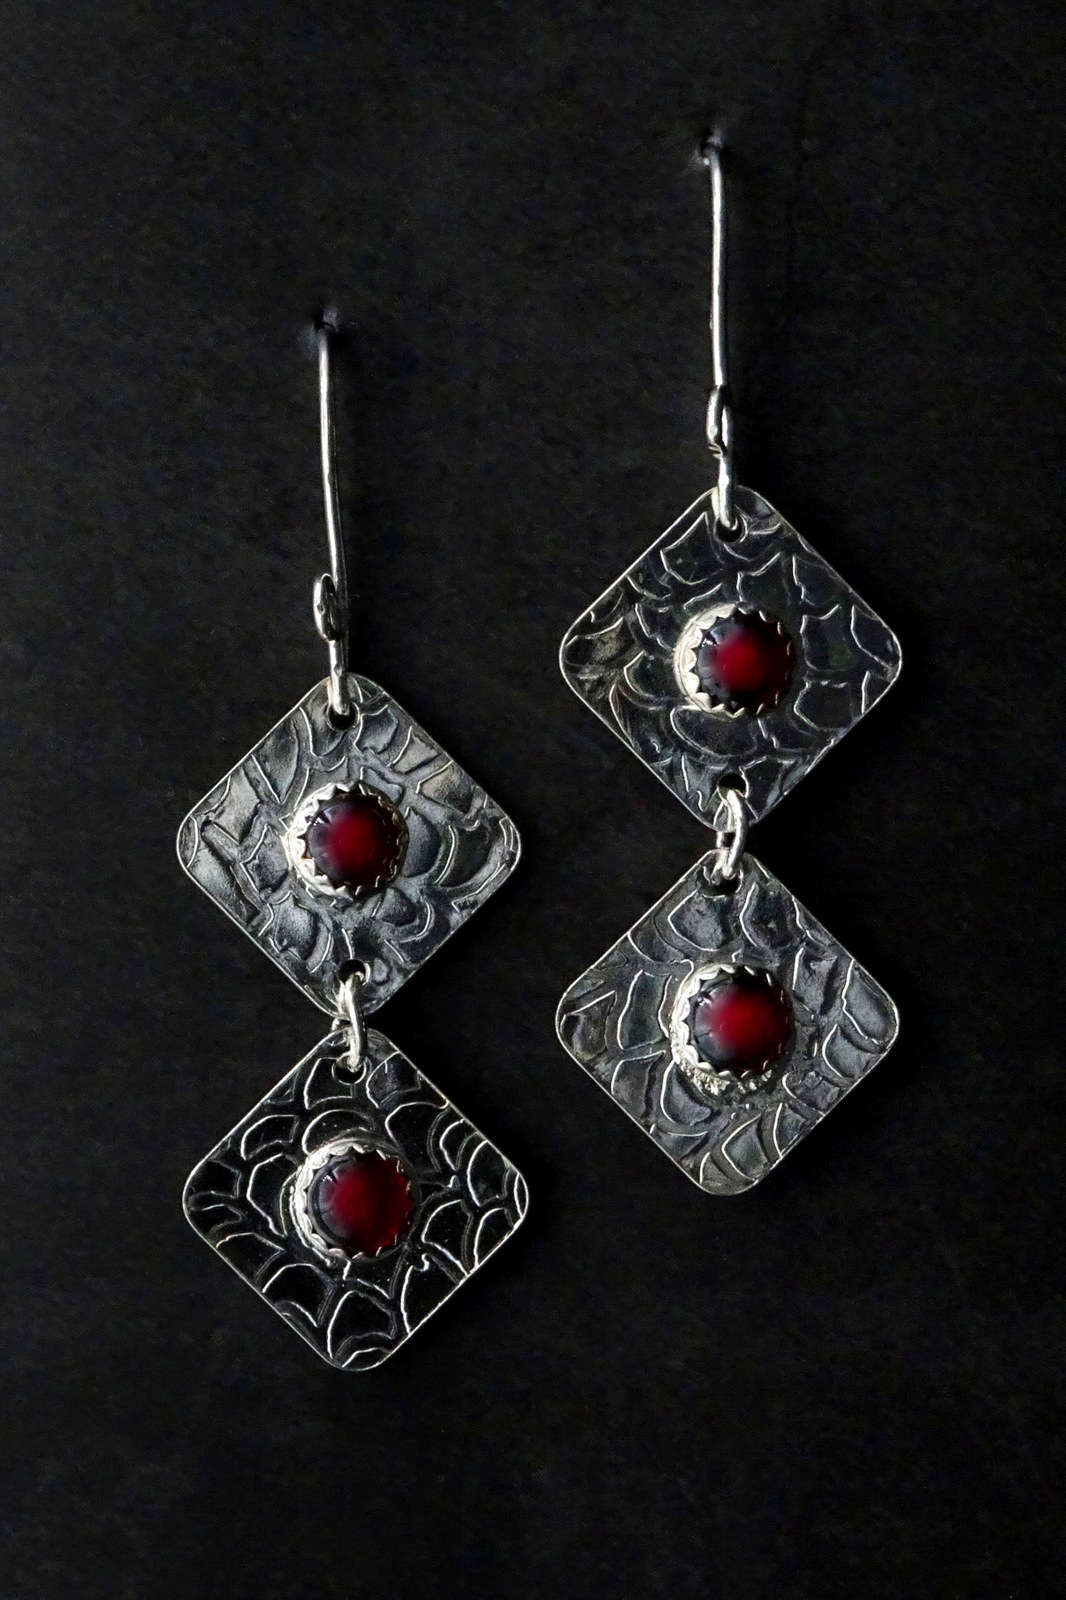 DOUBLE TIER SQUARE DISCS WITH RED STONE EARRINGS,  Silver Ear Wires,  1.5 x .75 inches - 2.25 inches drop length